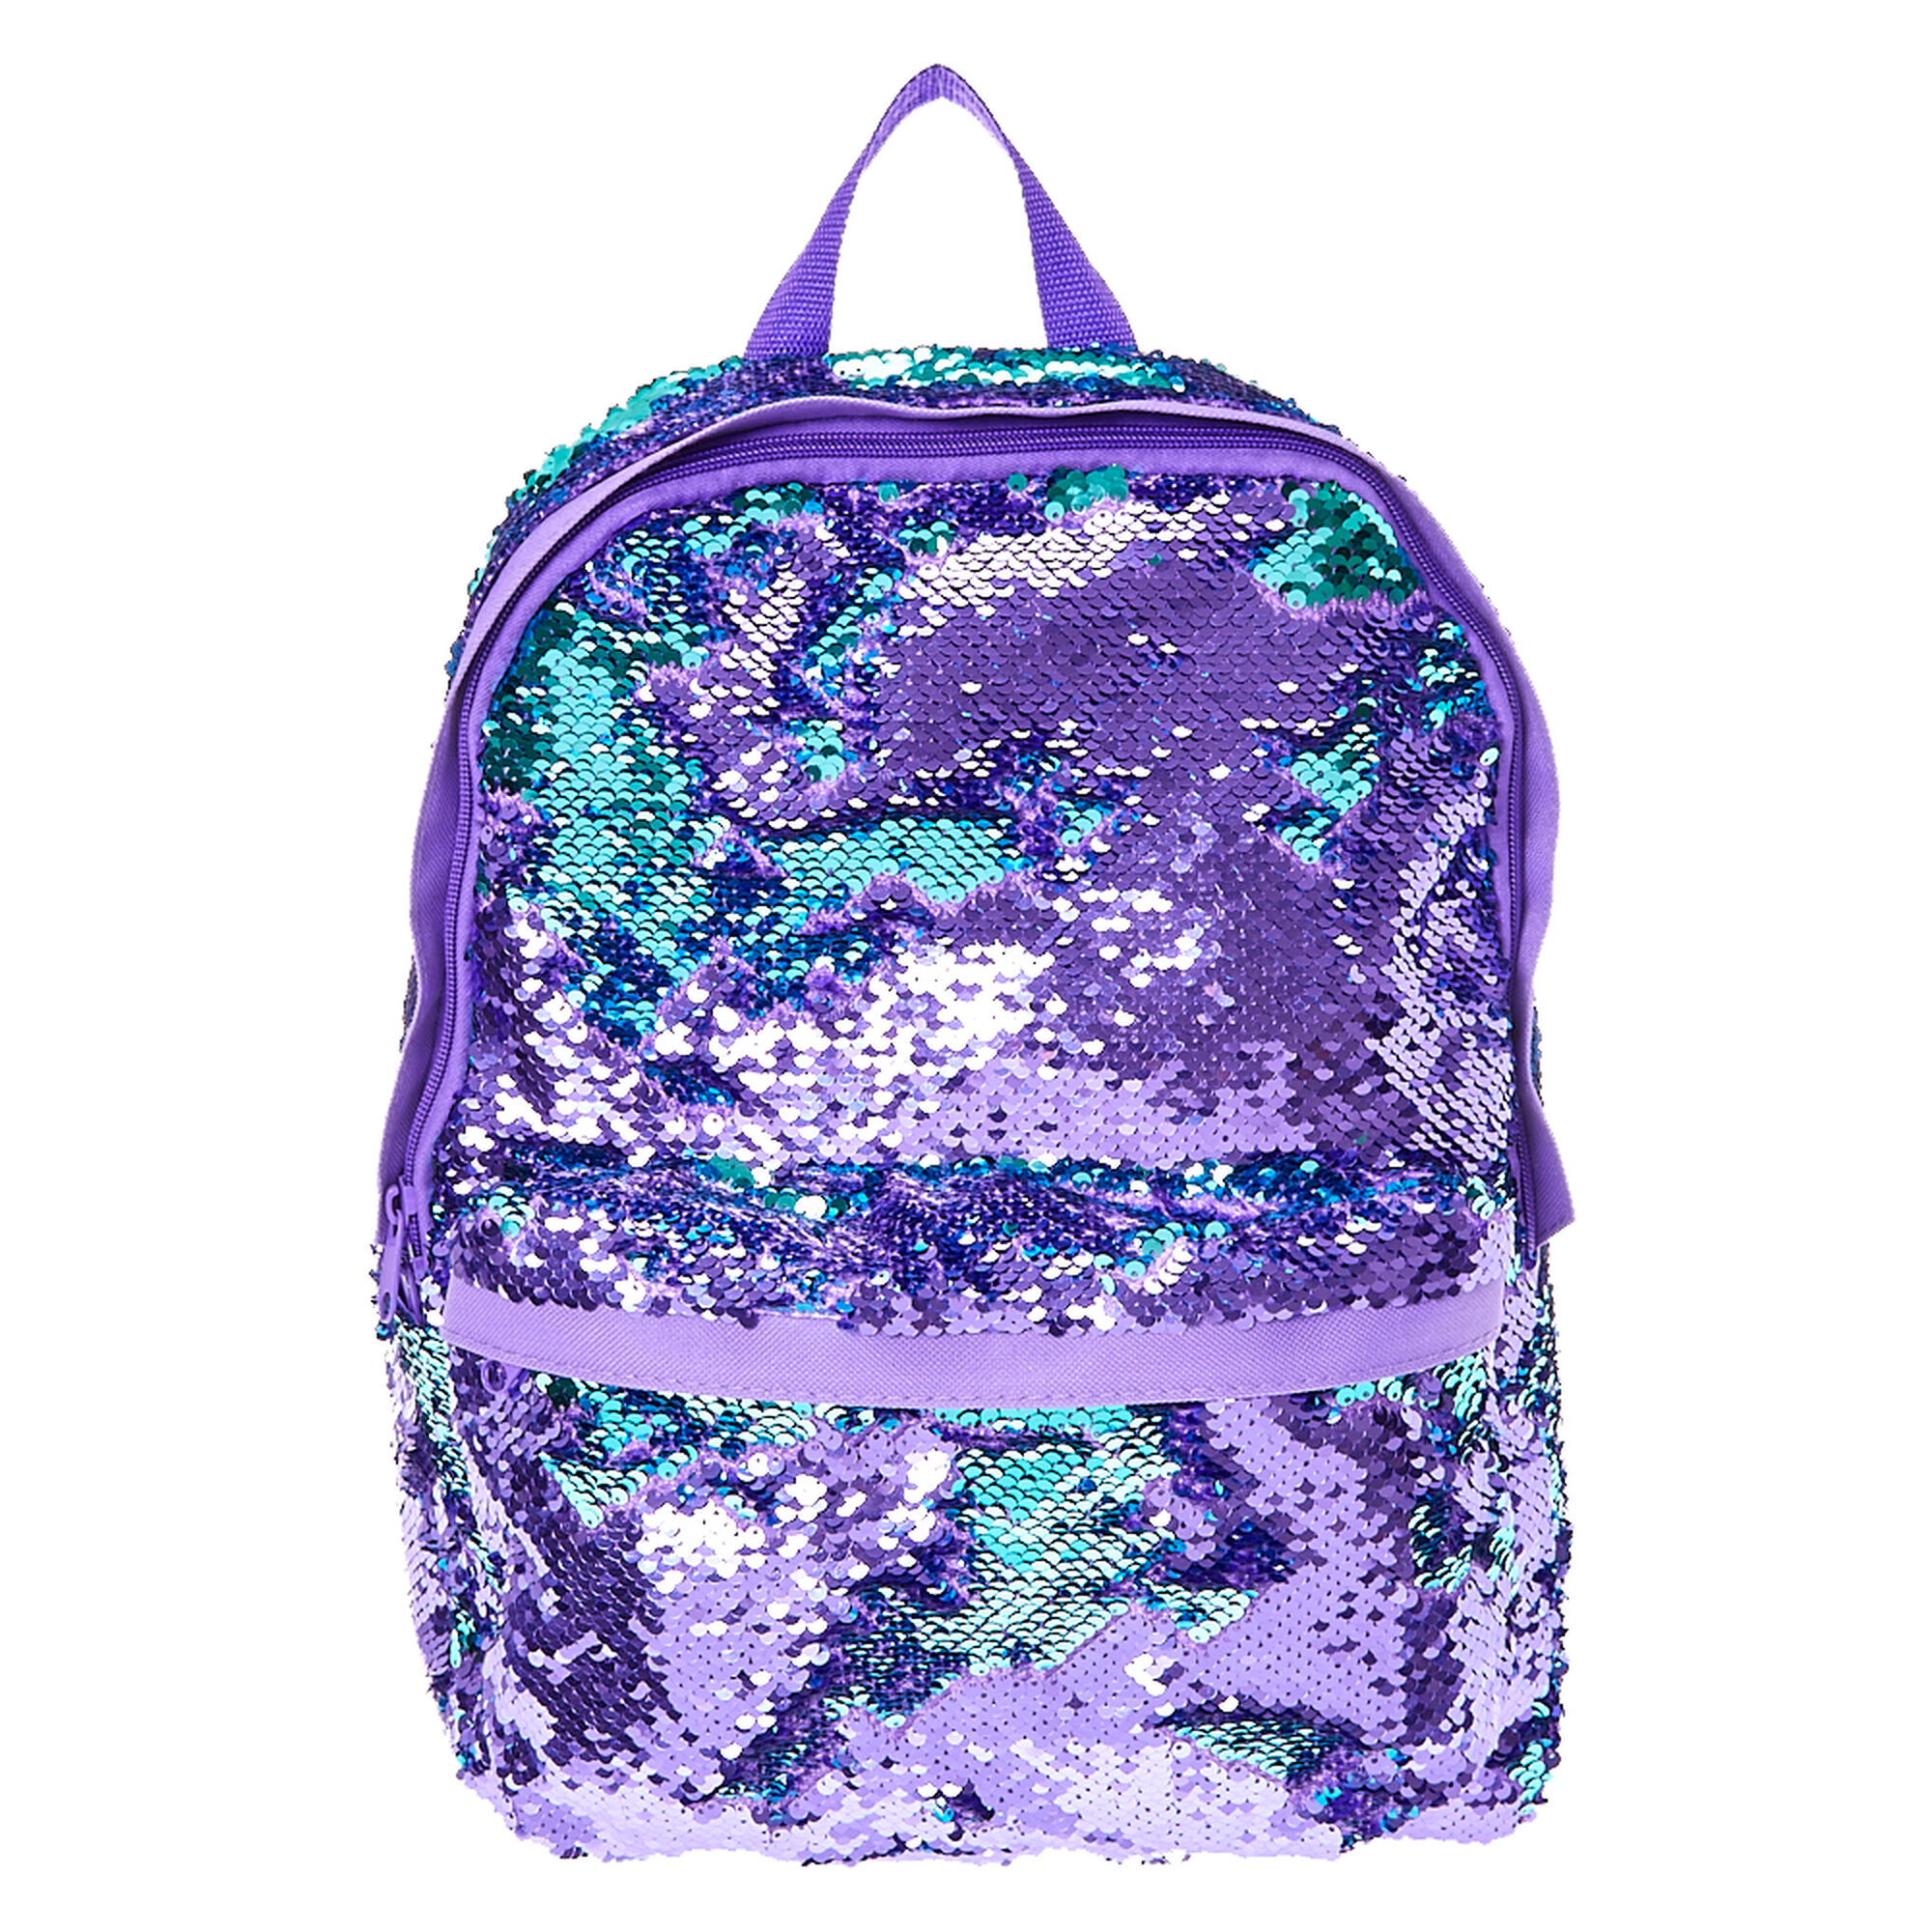 Reversible Purple To Turquoise Sequin Backpack Claire S Us